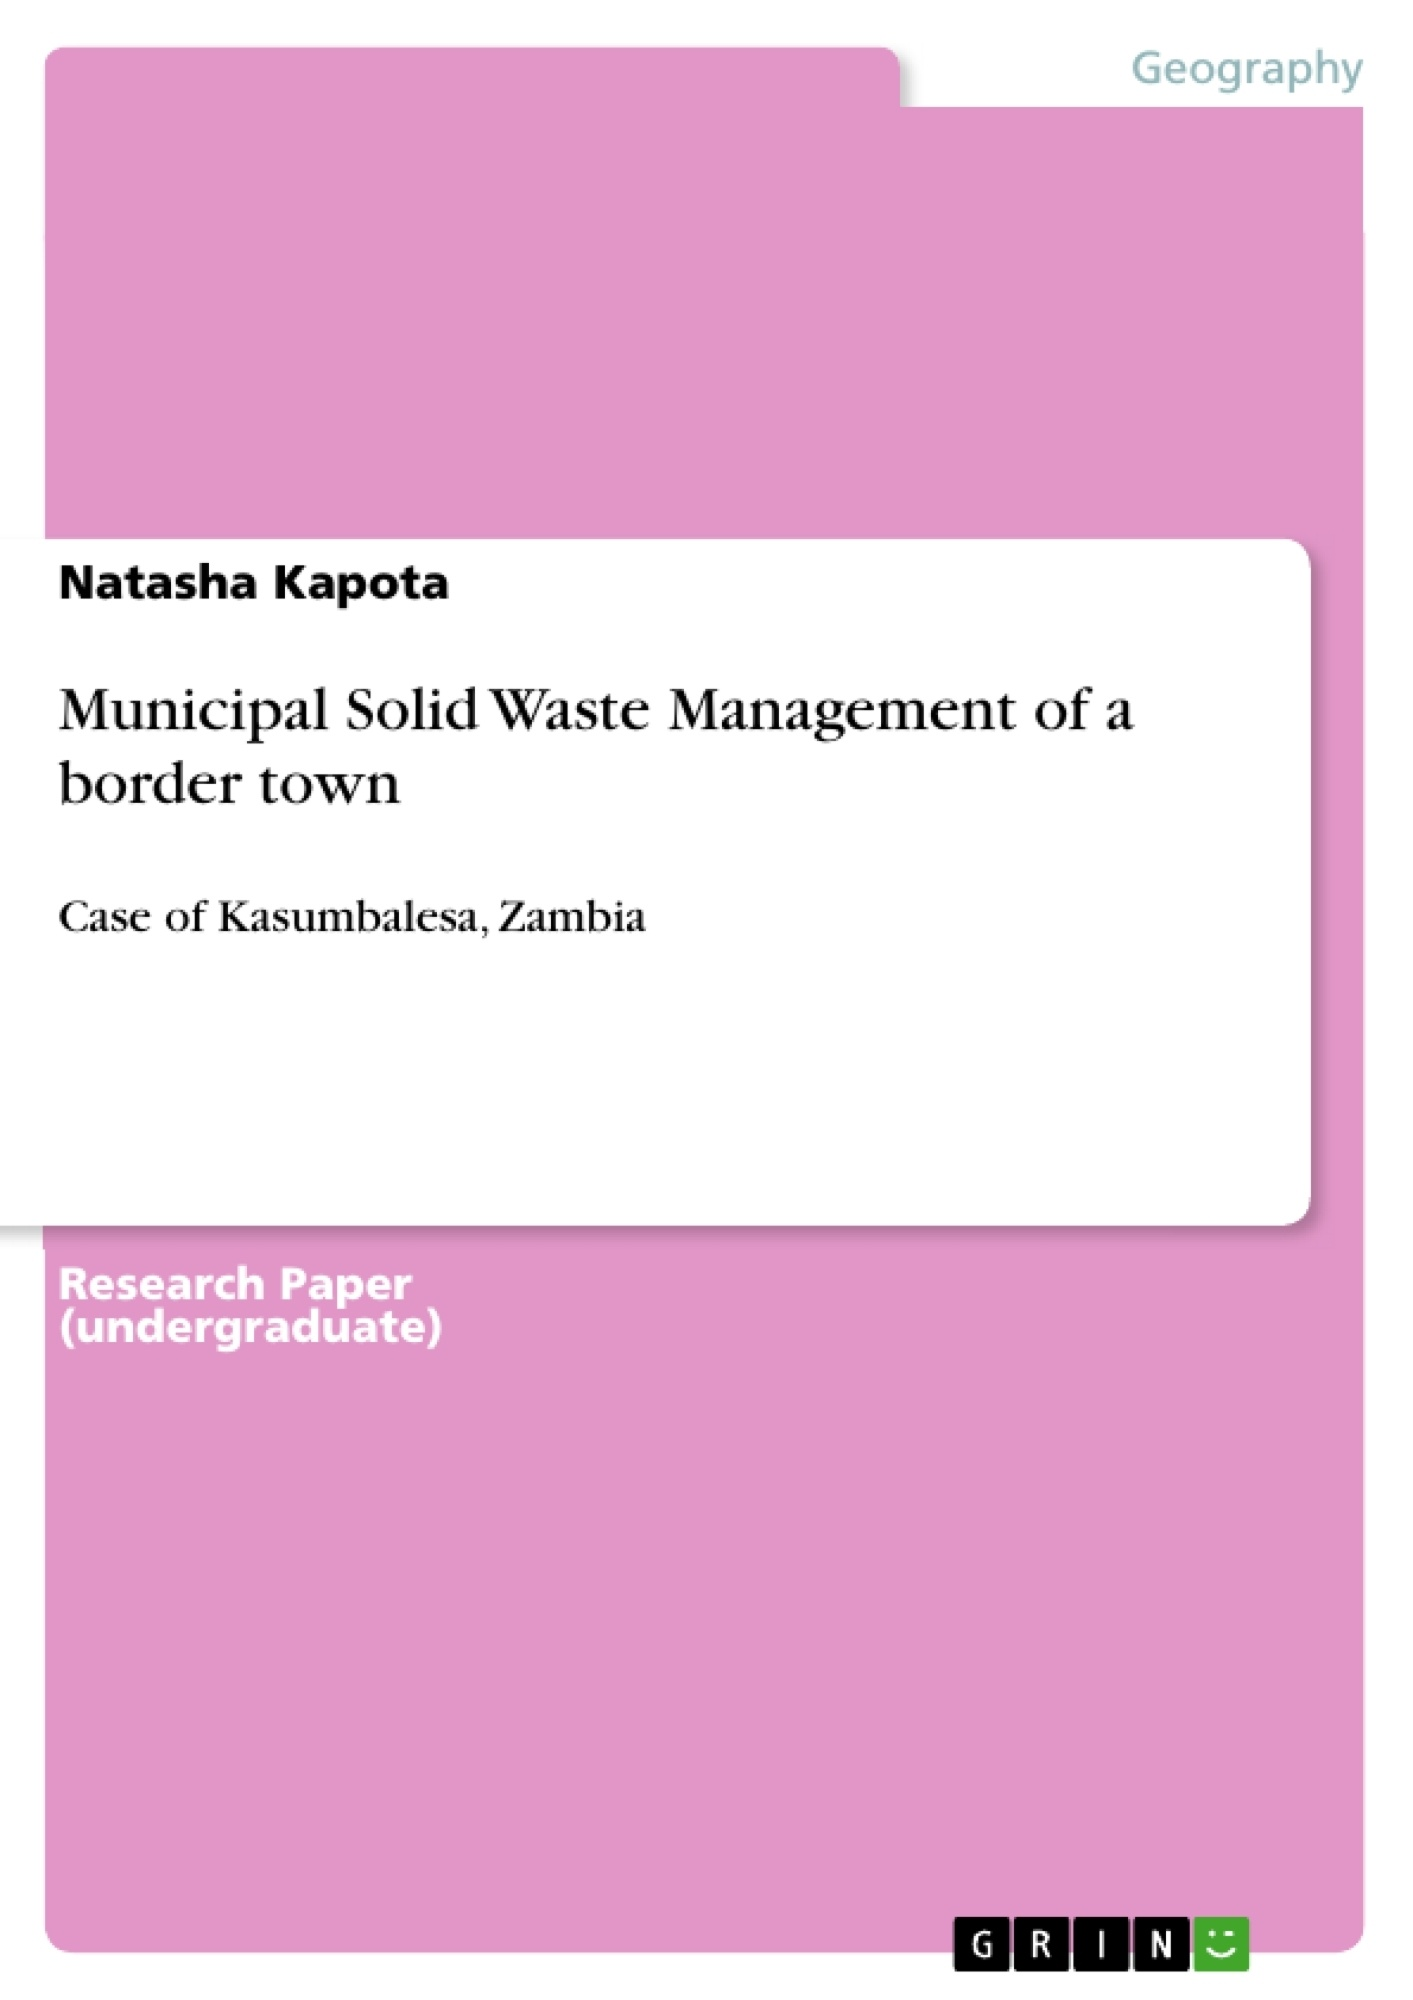 Title: Municipal Solid Waste Management of a border town